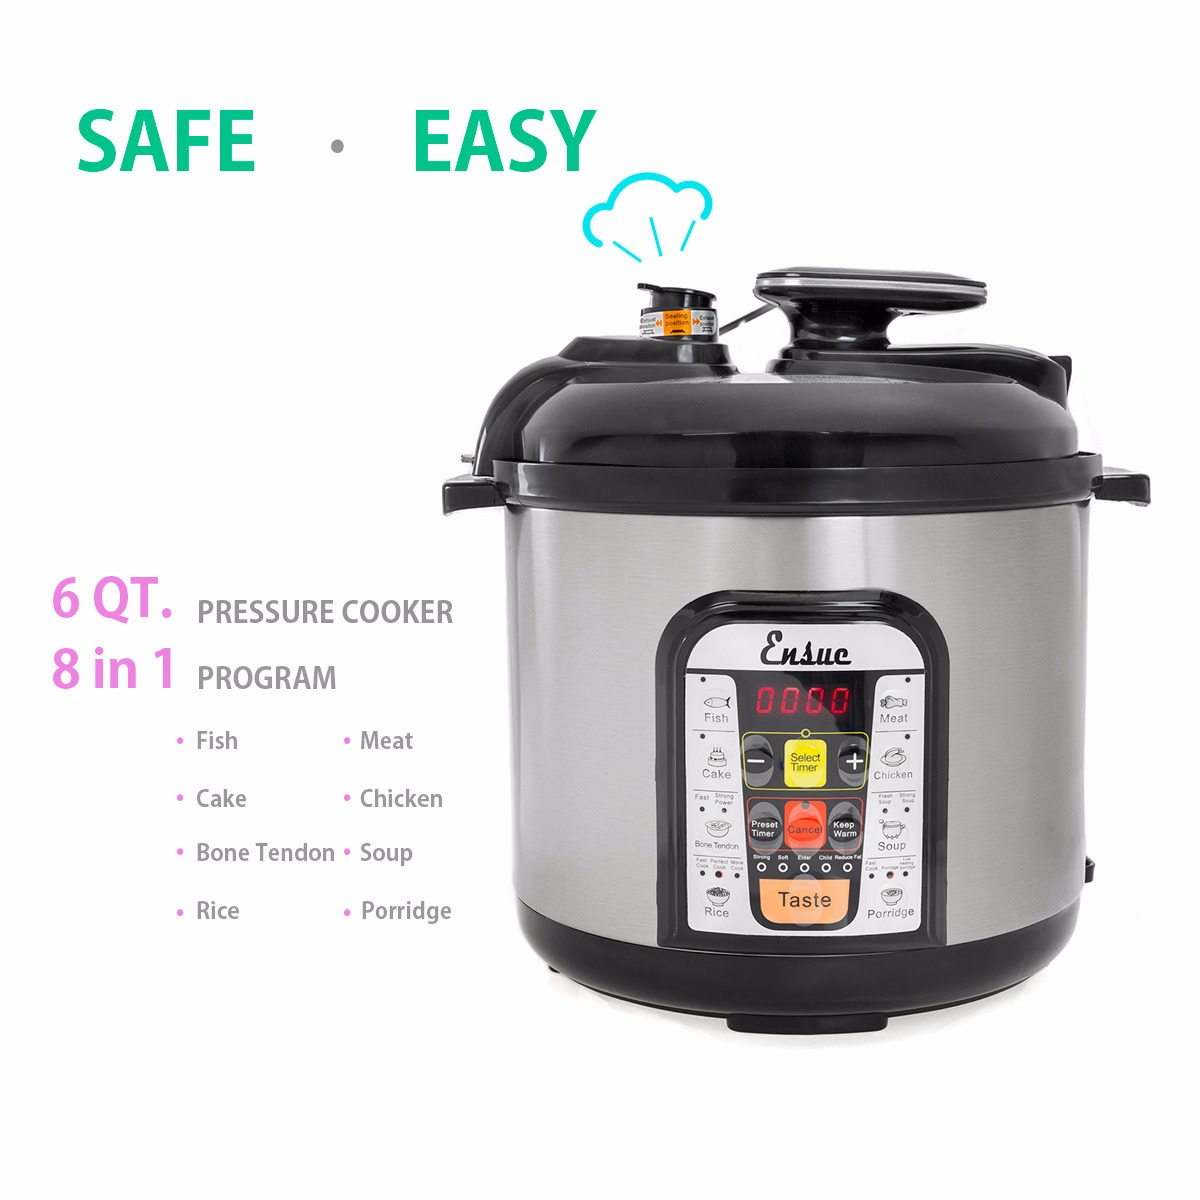 6 Quart Electric Pressure Cooker Rice Steamer Stainless Steel 1000W by